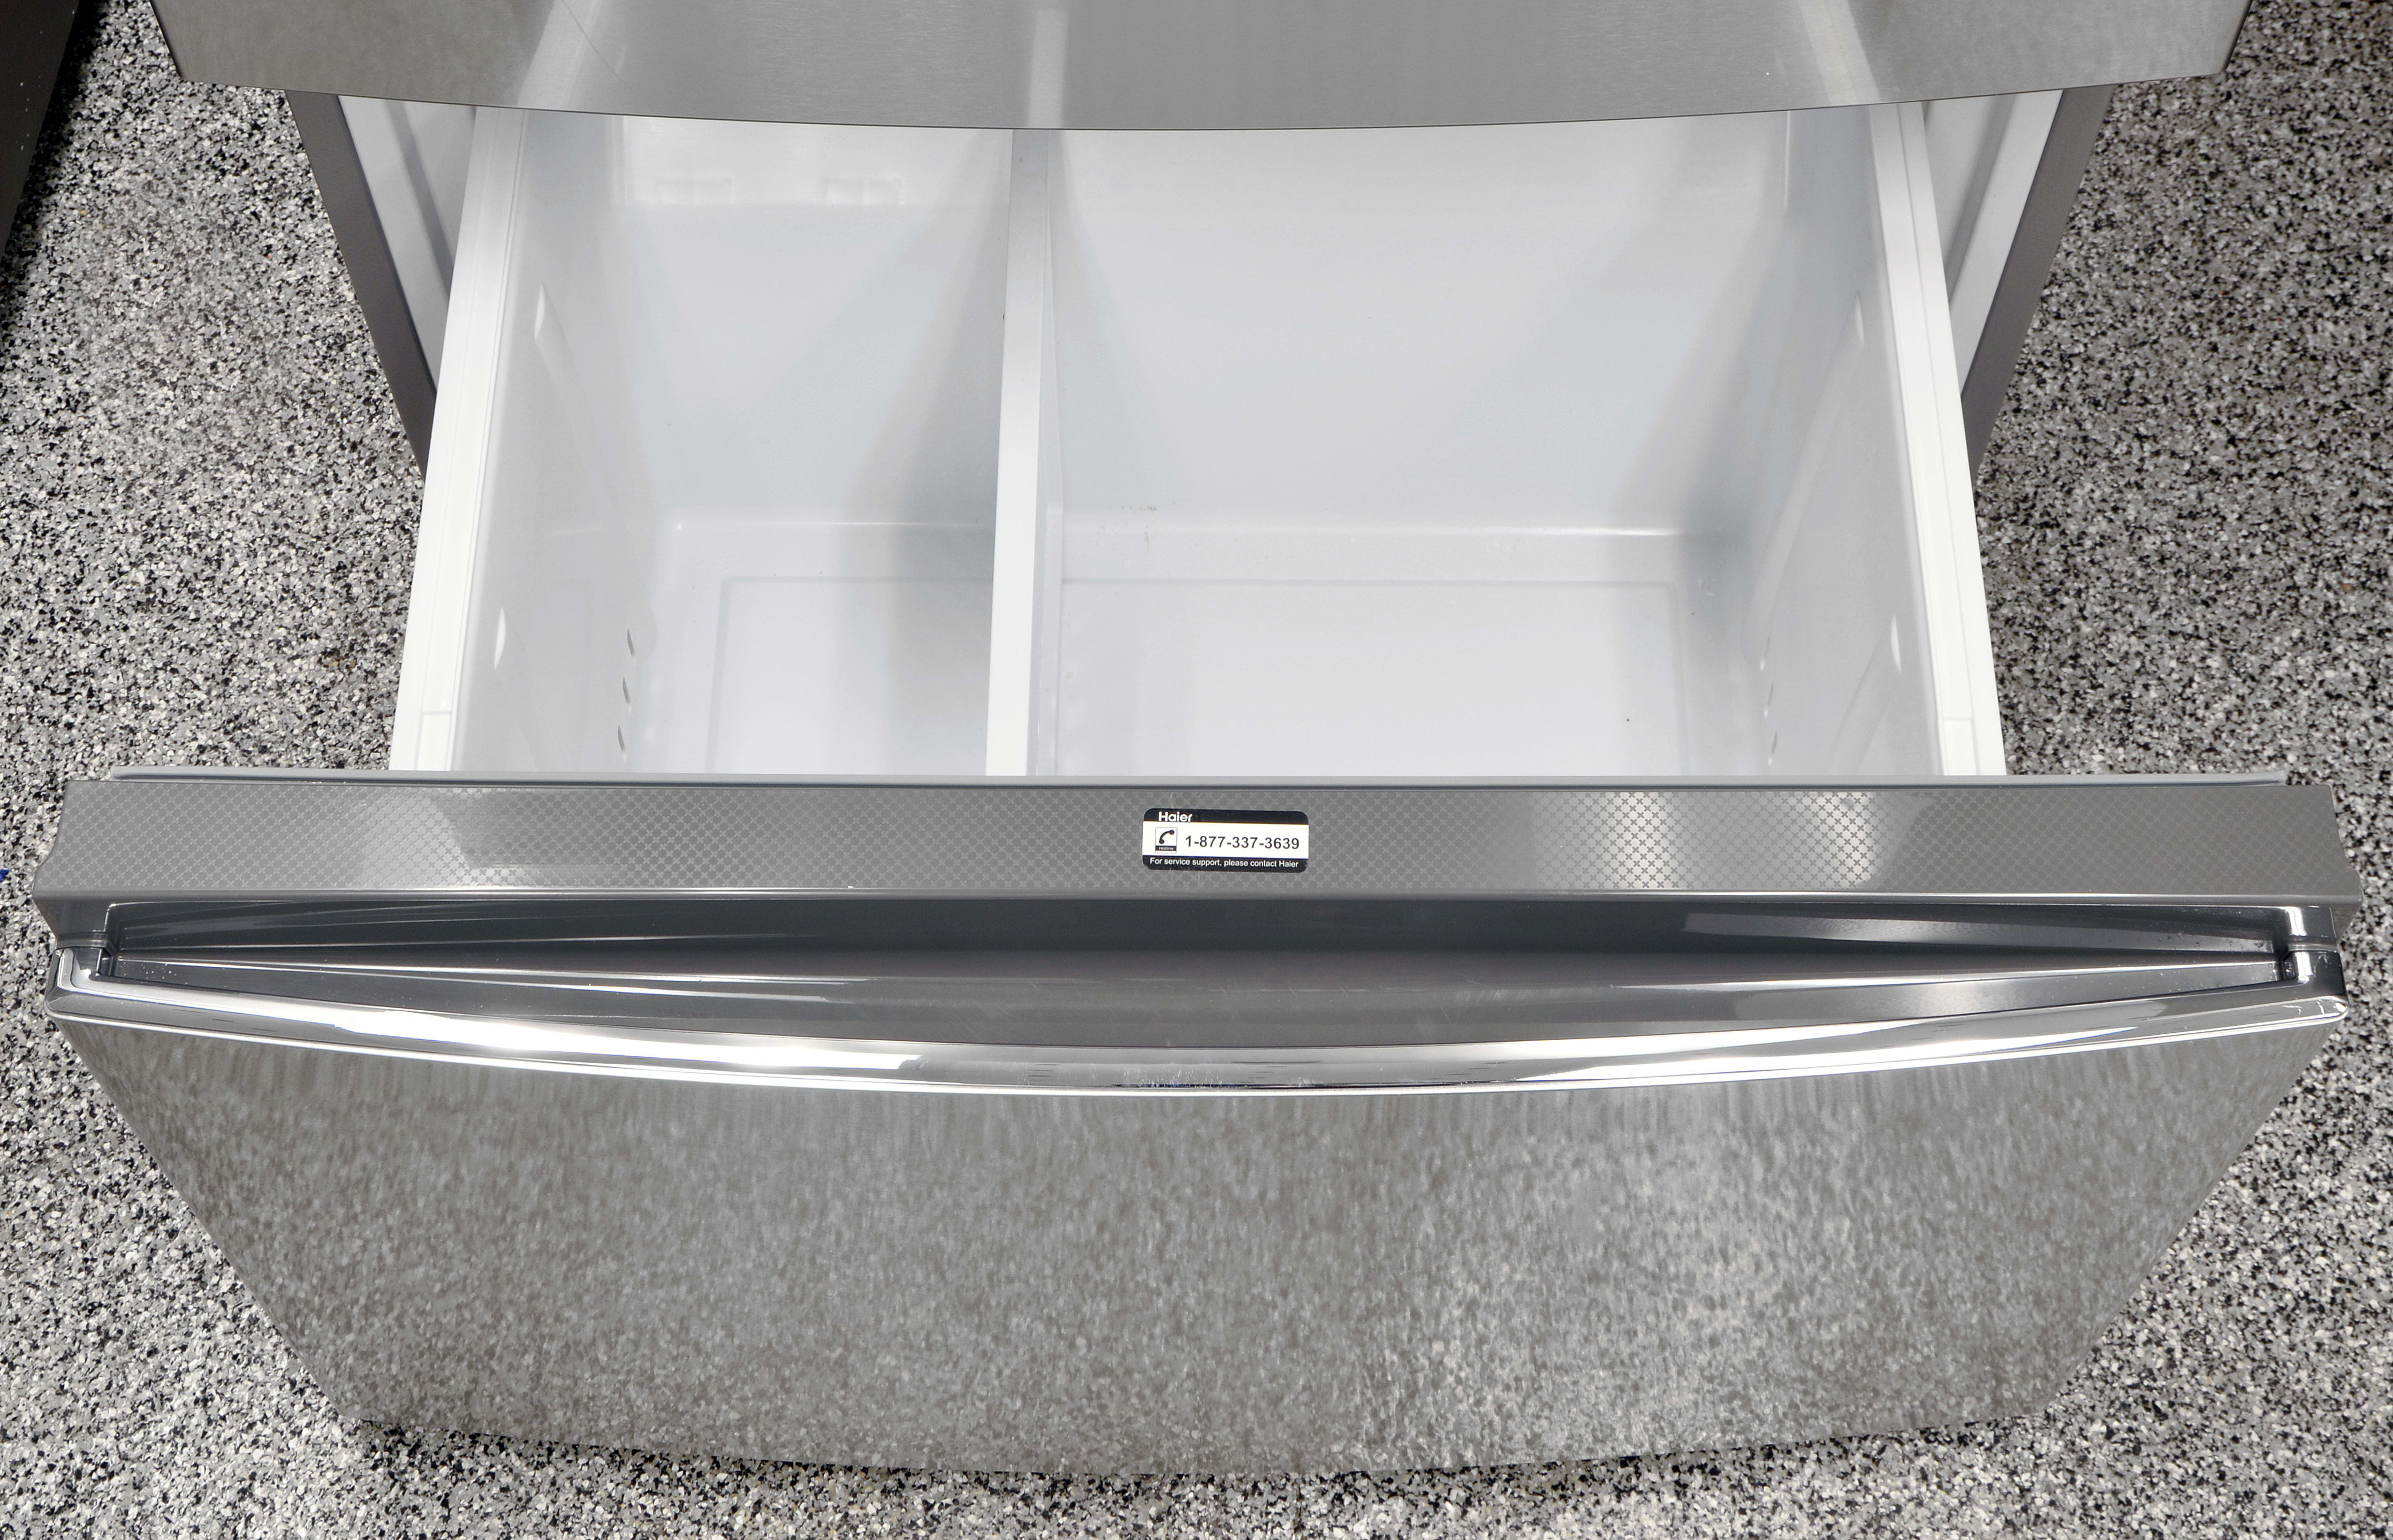 The Haier HRF15N3AGS's lower freezer drawer has an adjustable partition, and is taller than the upper one.